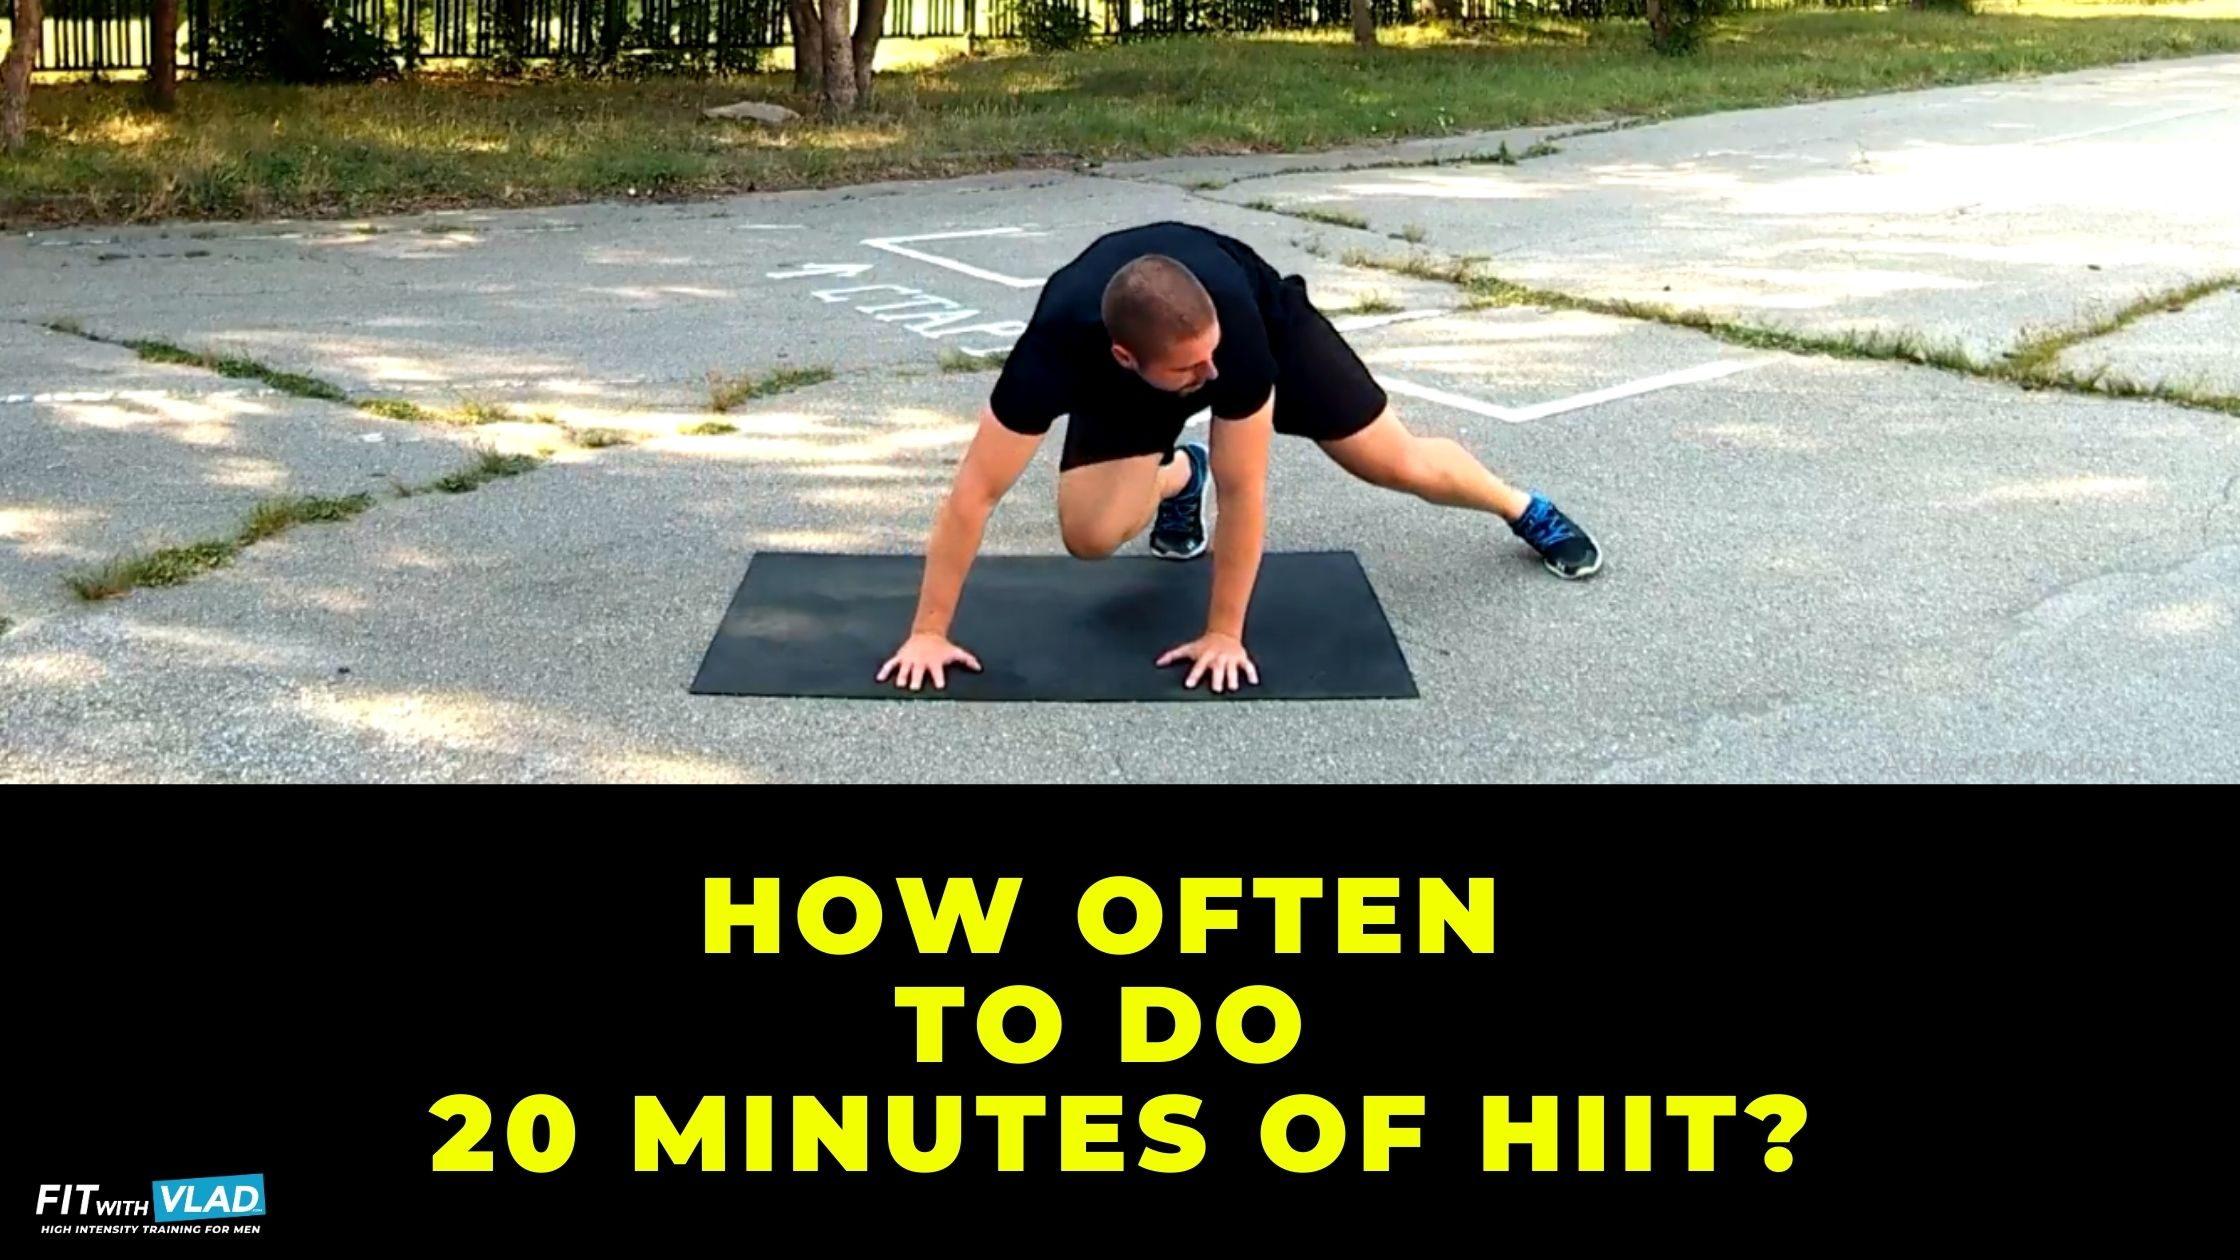 How often to do 20 minute HIIT workouts at home as a beginner